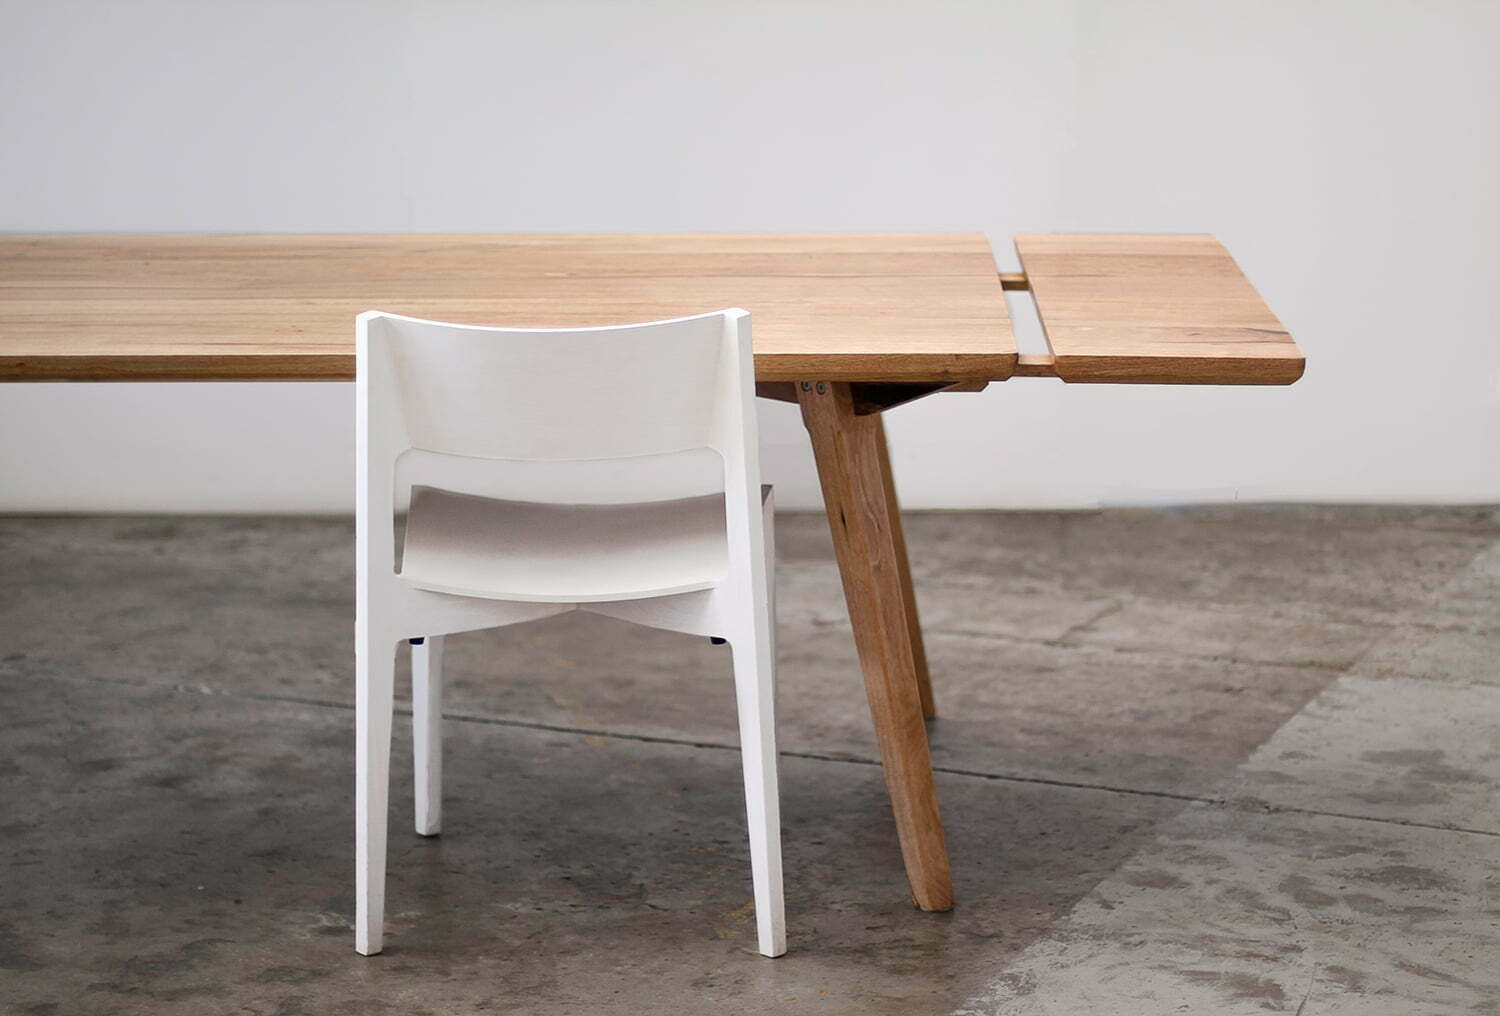 jordan table extendable Recycled Timber Furniture